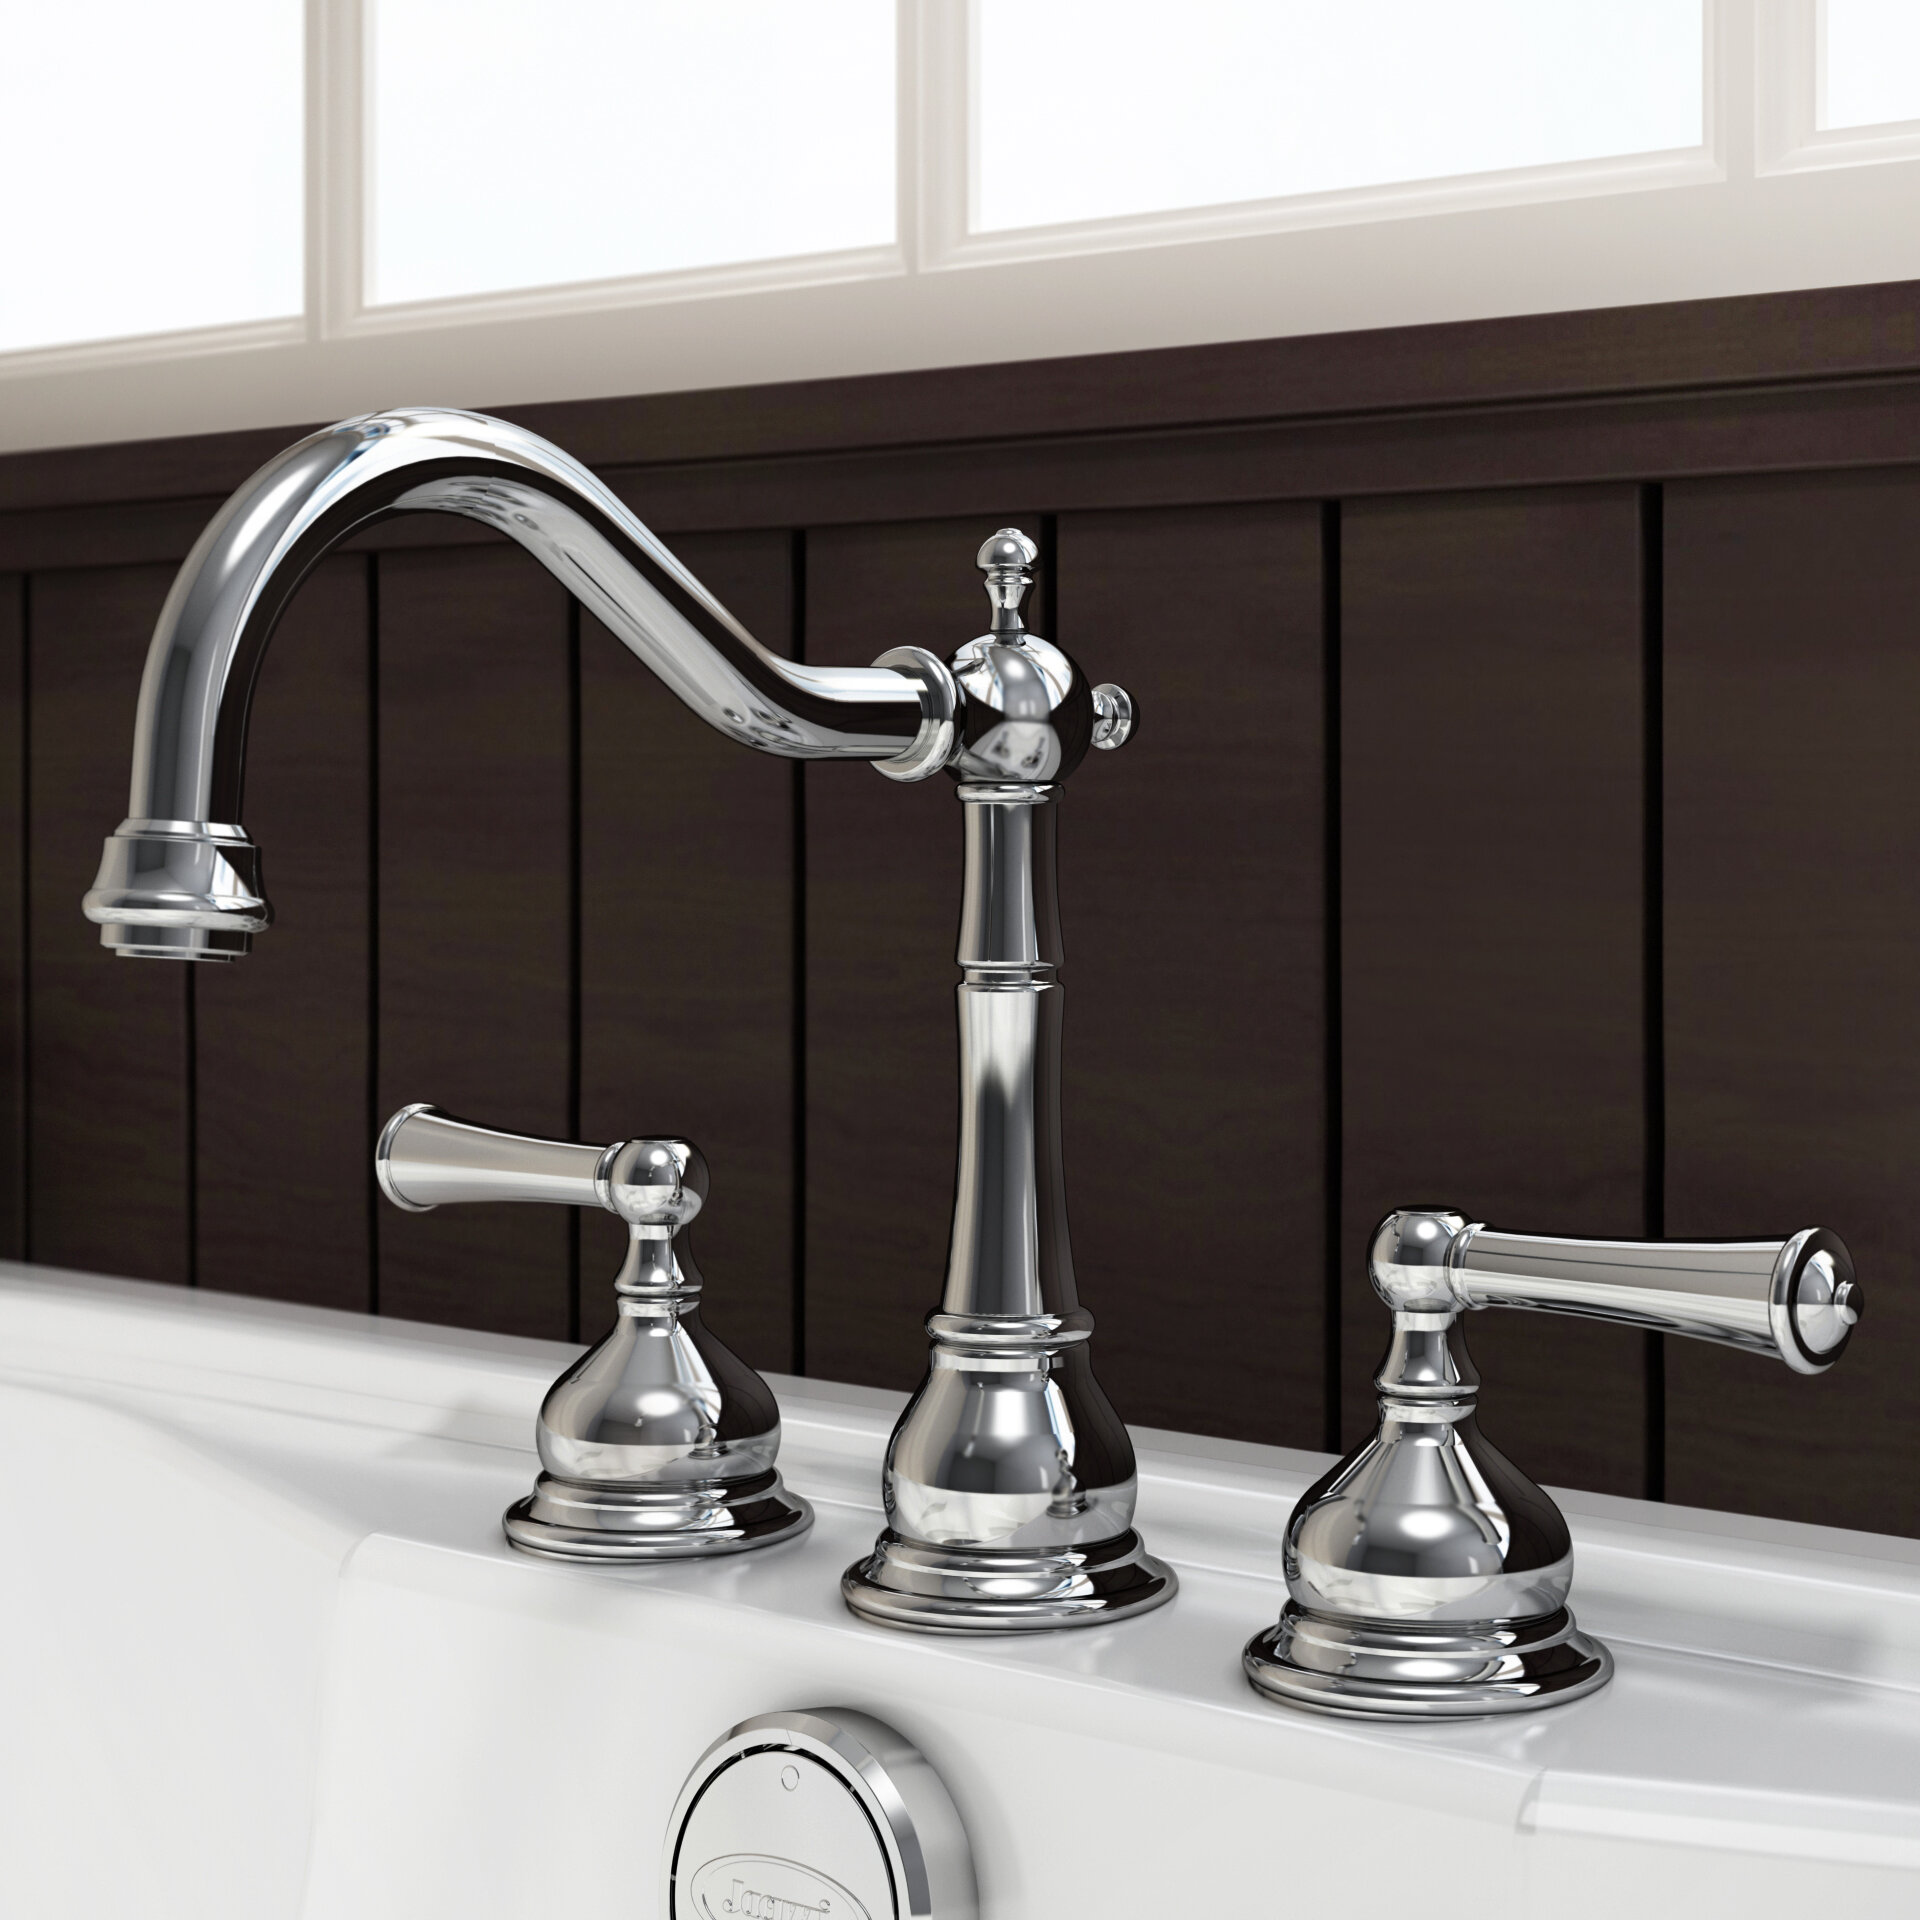 Jacuzzi® Barrea Double Handle Deck Mount Roman Tub Faucet Trim | Wayfair